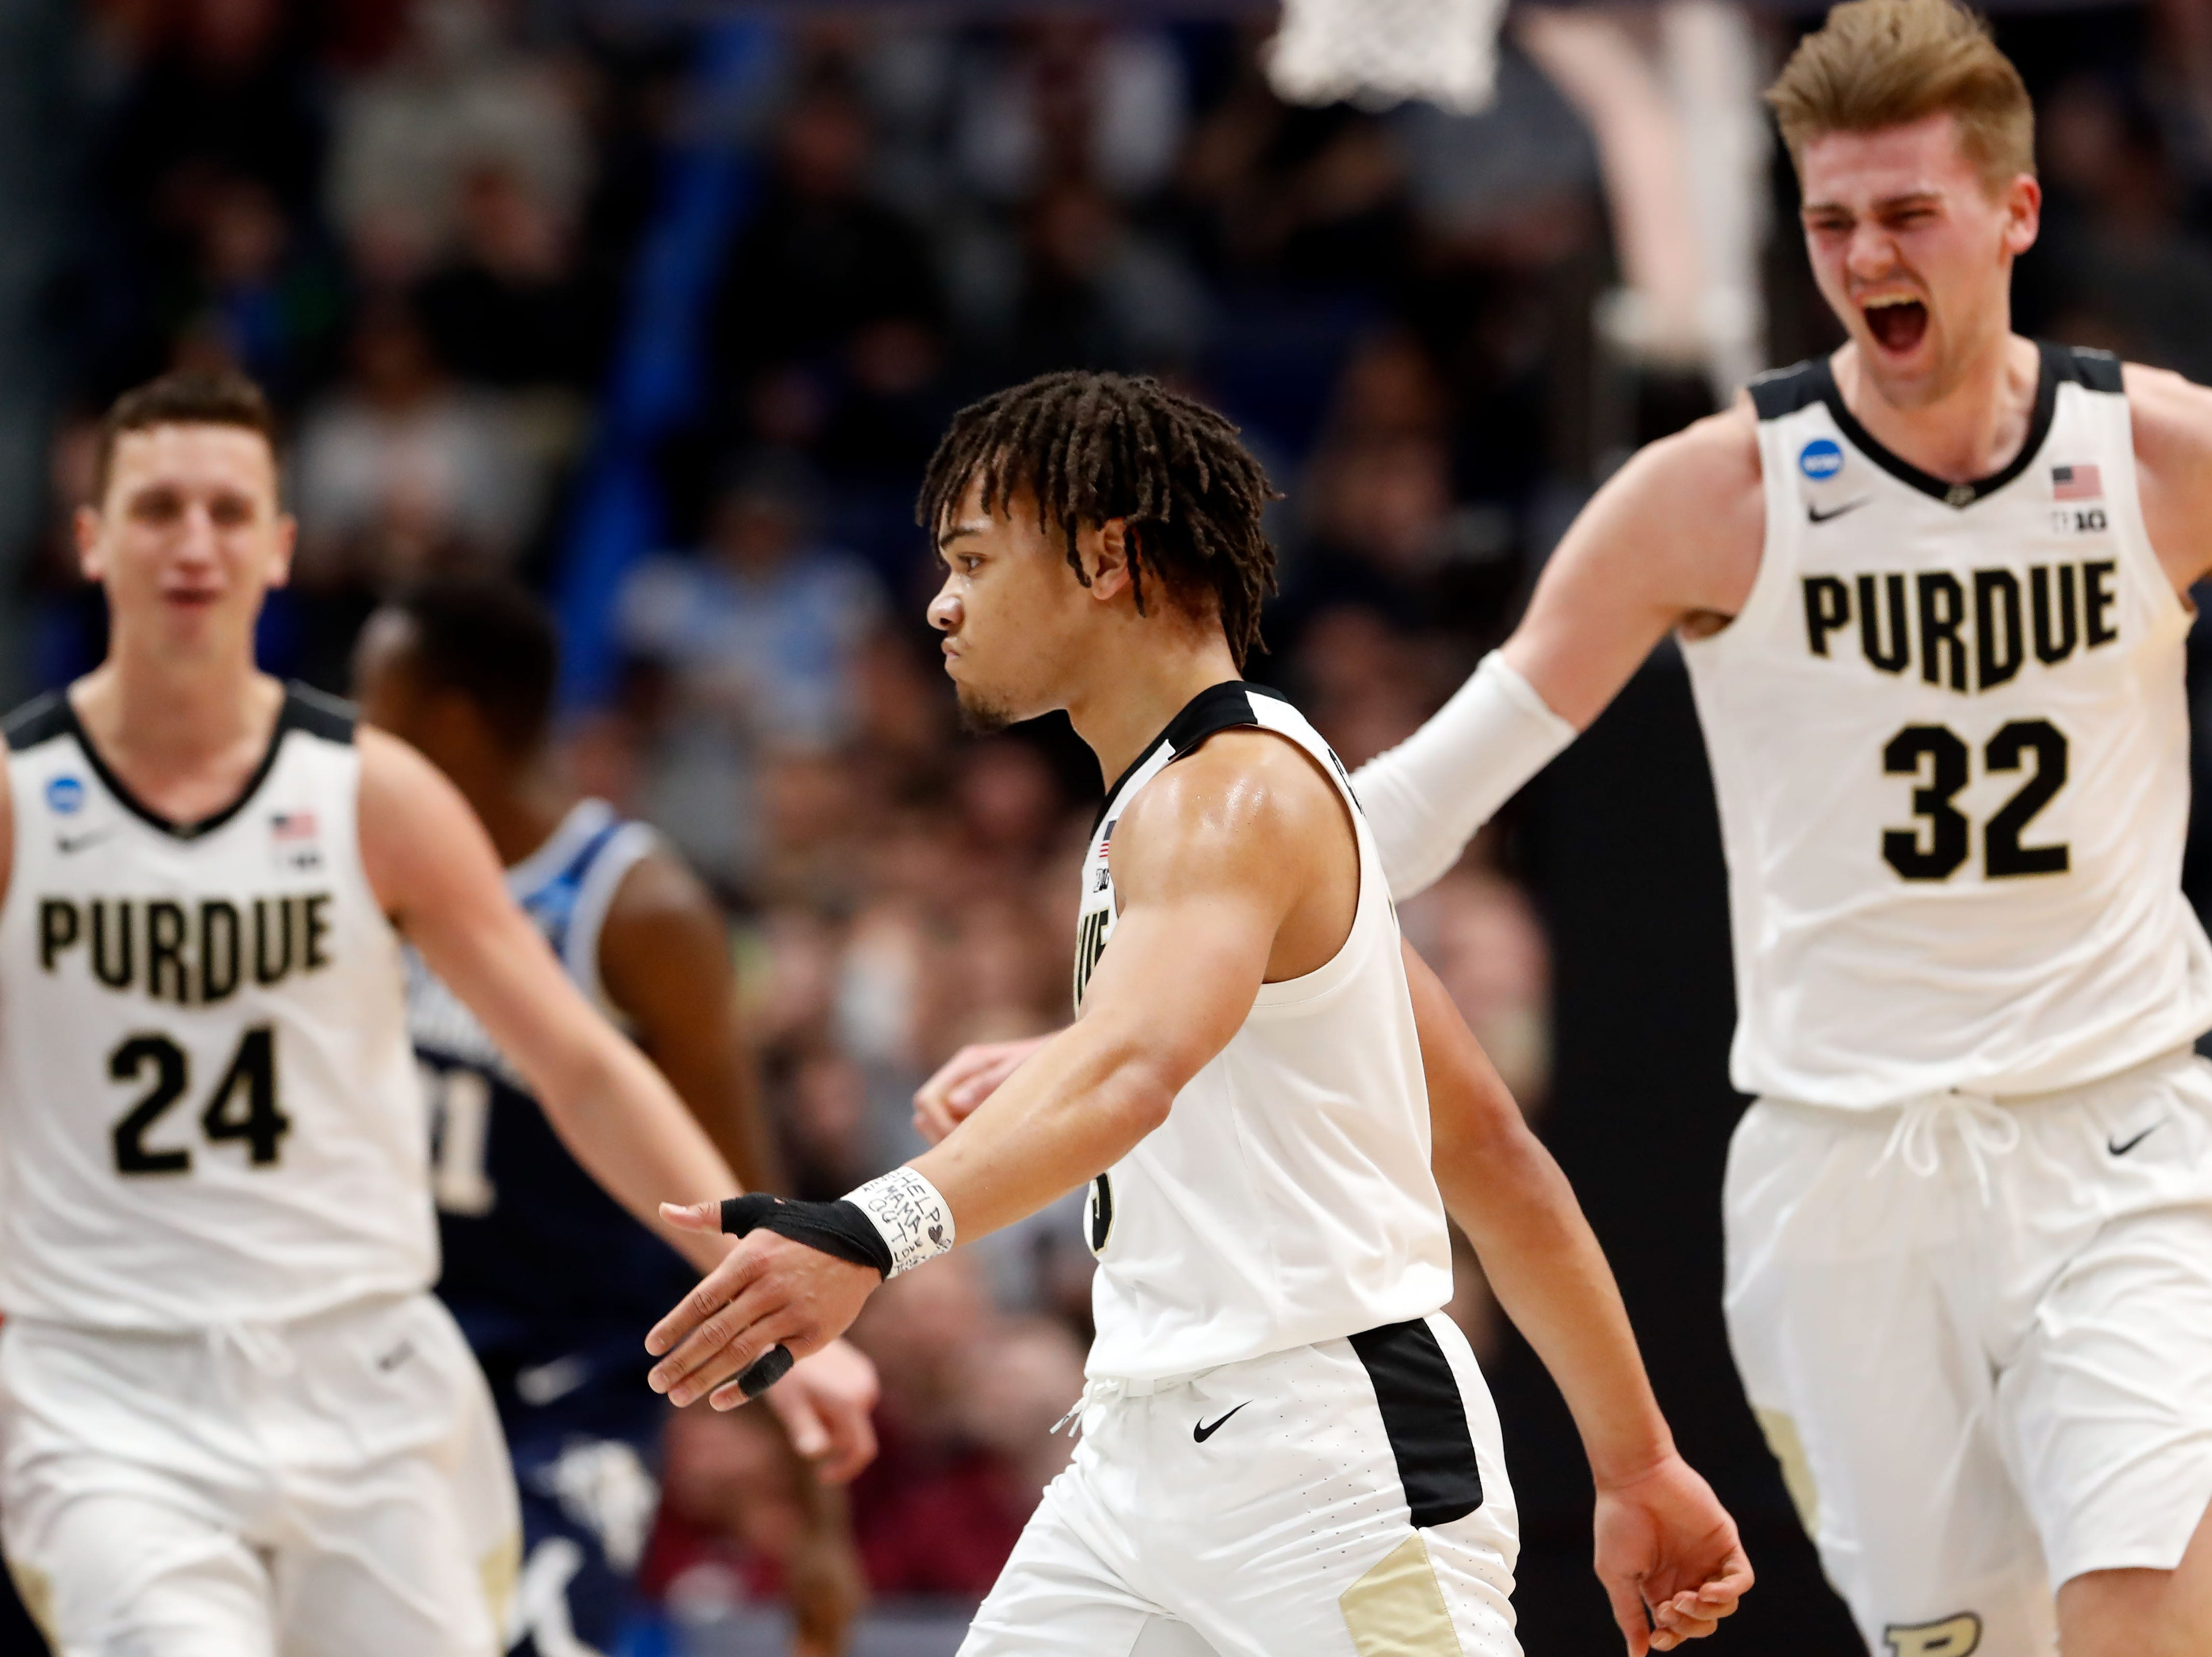 Mar 23, 2019; Hartford, CT, USA; Purdue Boilermakers guard Carsen Edwards (3), forward Grady Eifert (24), and center Matt Haarms (32) react after a score against the Villanova Wildcats during the second half of a game in the second round of the 2019 NCAA Tournament at XL Center. Mandatory Credit: David Butler II-USA TODAY Sports